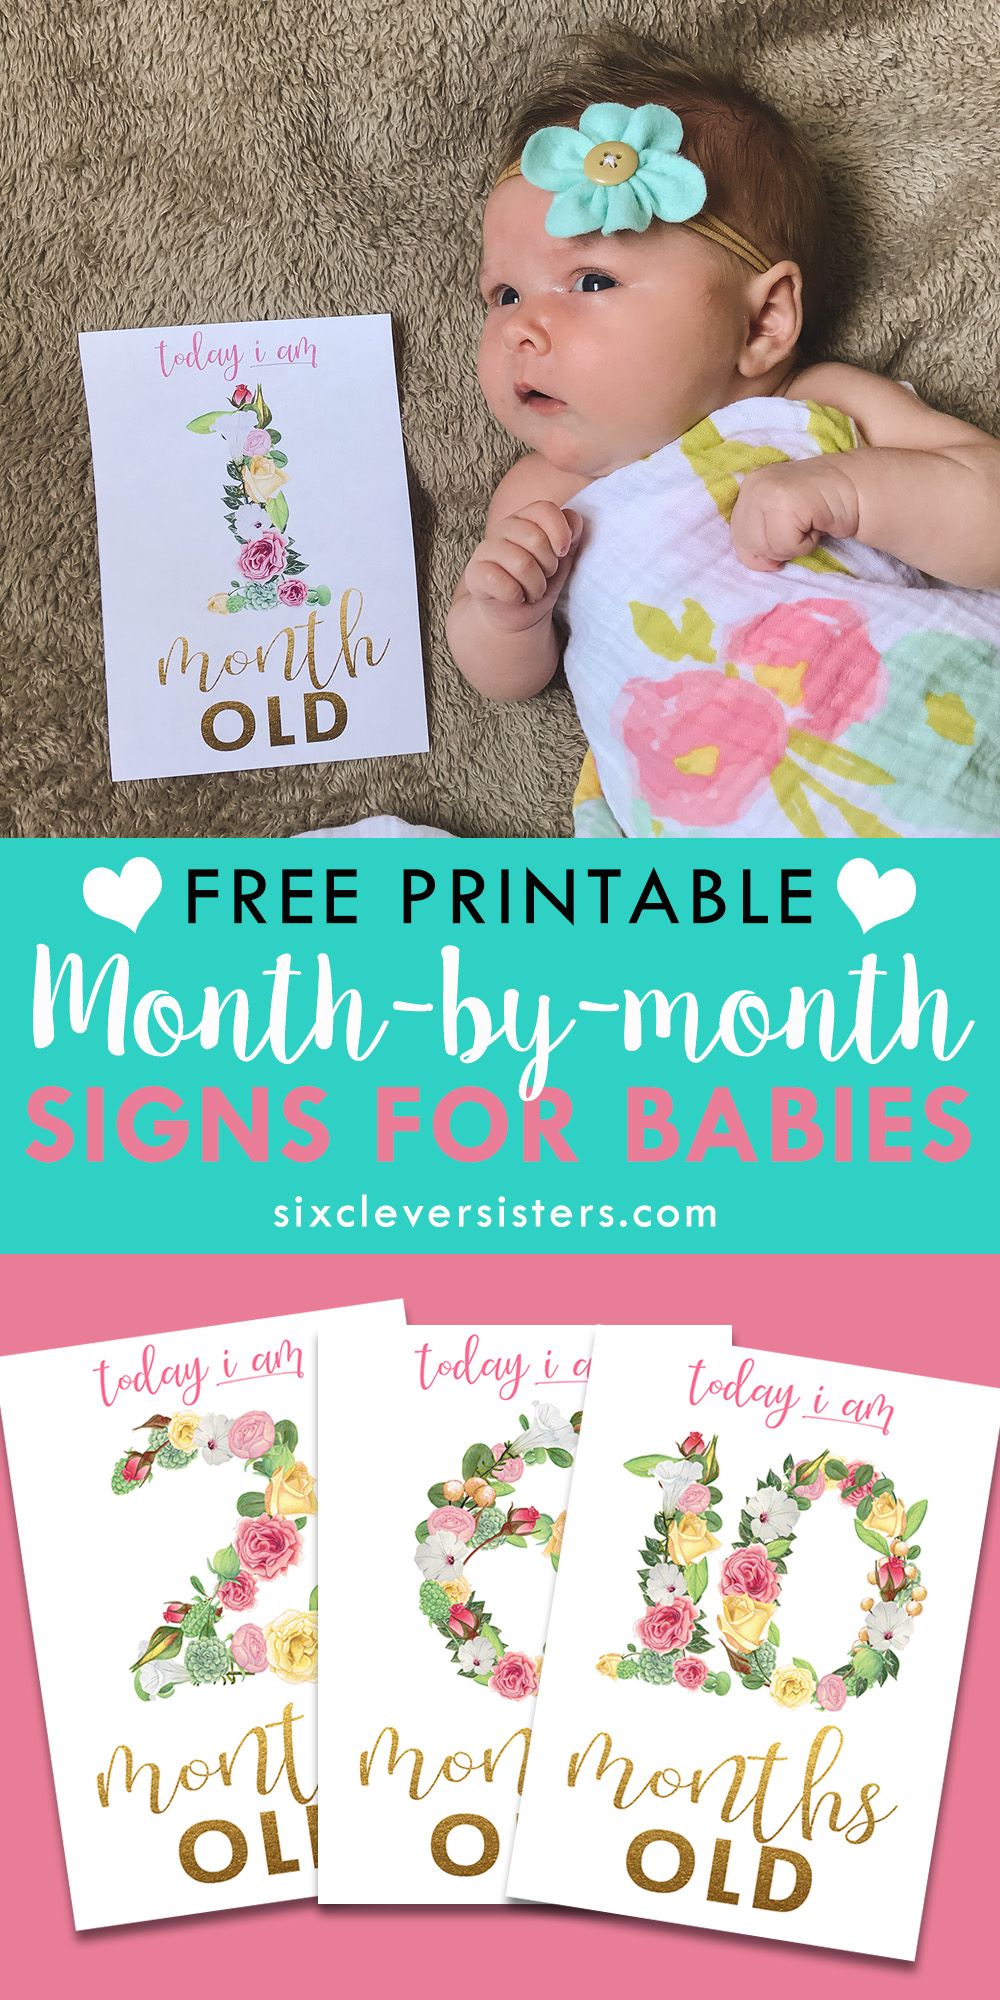 photo about Printable Baby Month Signs named Floral Thirty day period Indicators for Child Photographs - 6 Wise Sisters